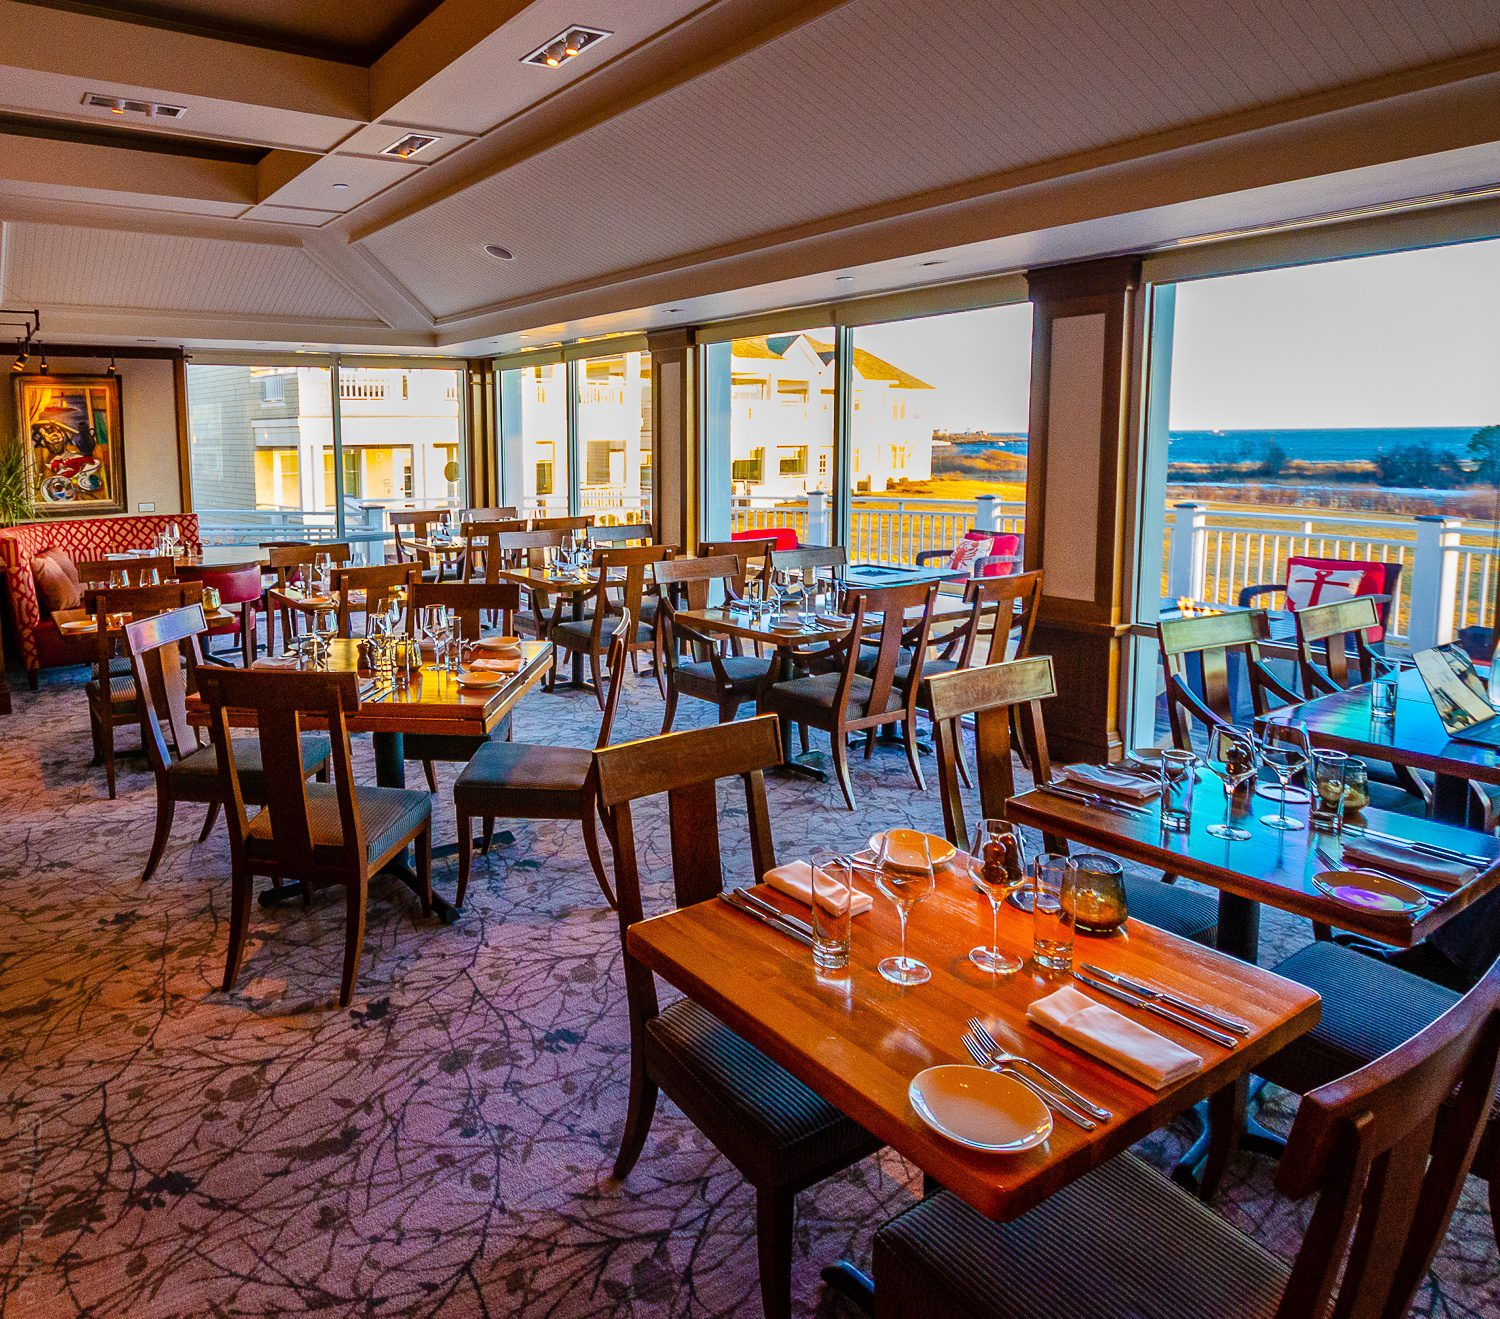 Inn by the Sea Maine Resort: Sea Glass Restaurant with an ocean view